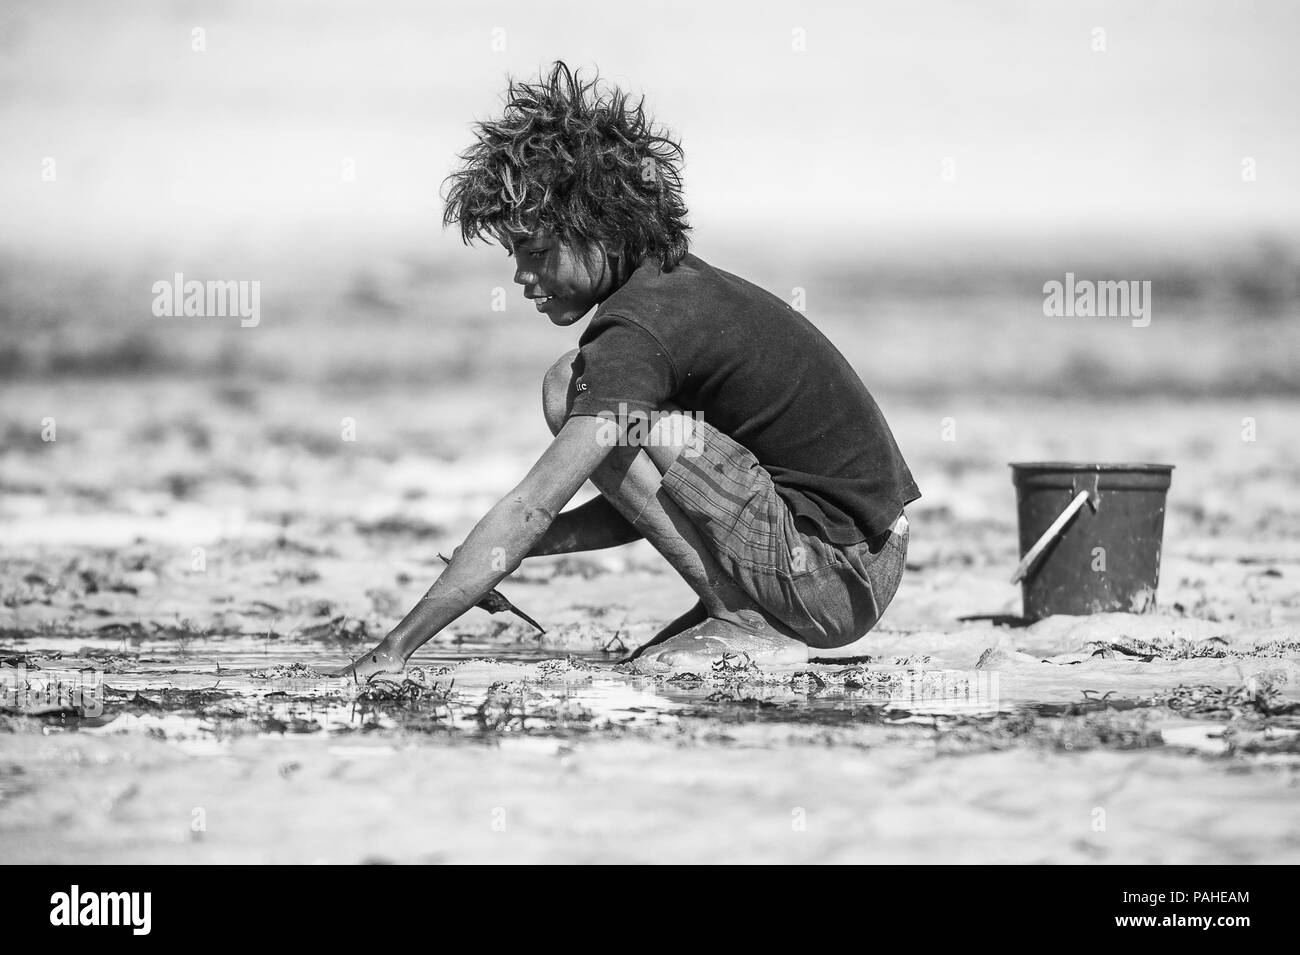 ANTANANARIVO, MADAGASCAR - JULY 3, 2011: Unidentified Madagascar boy plays with sand. People in Madagascar suffer of poverty due to slow development o - Stock Image